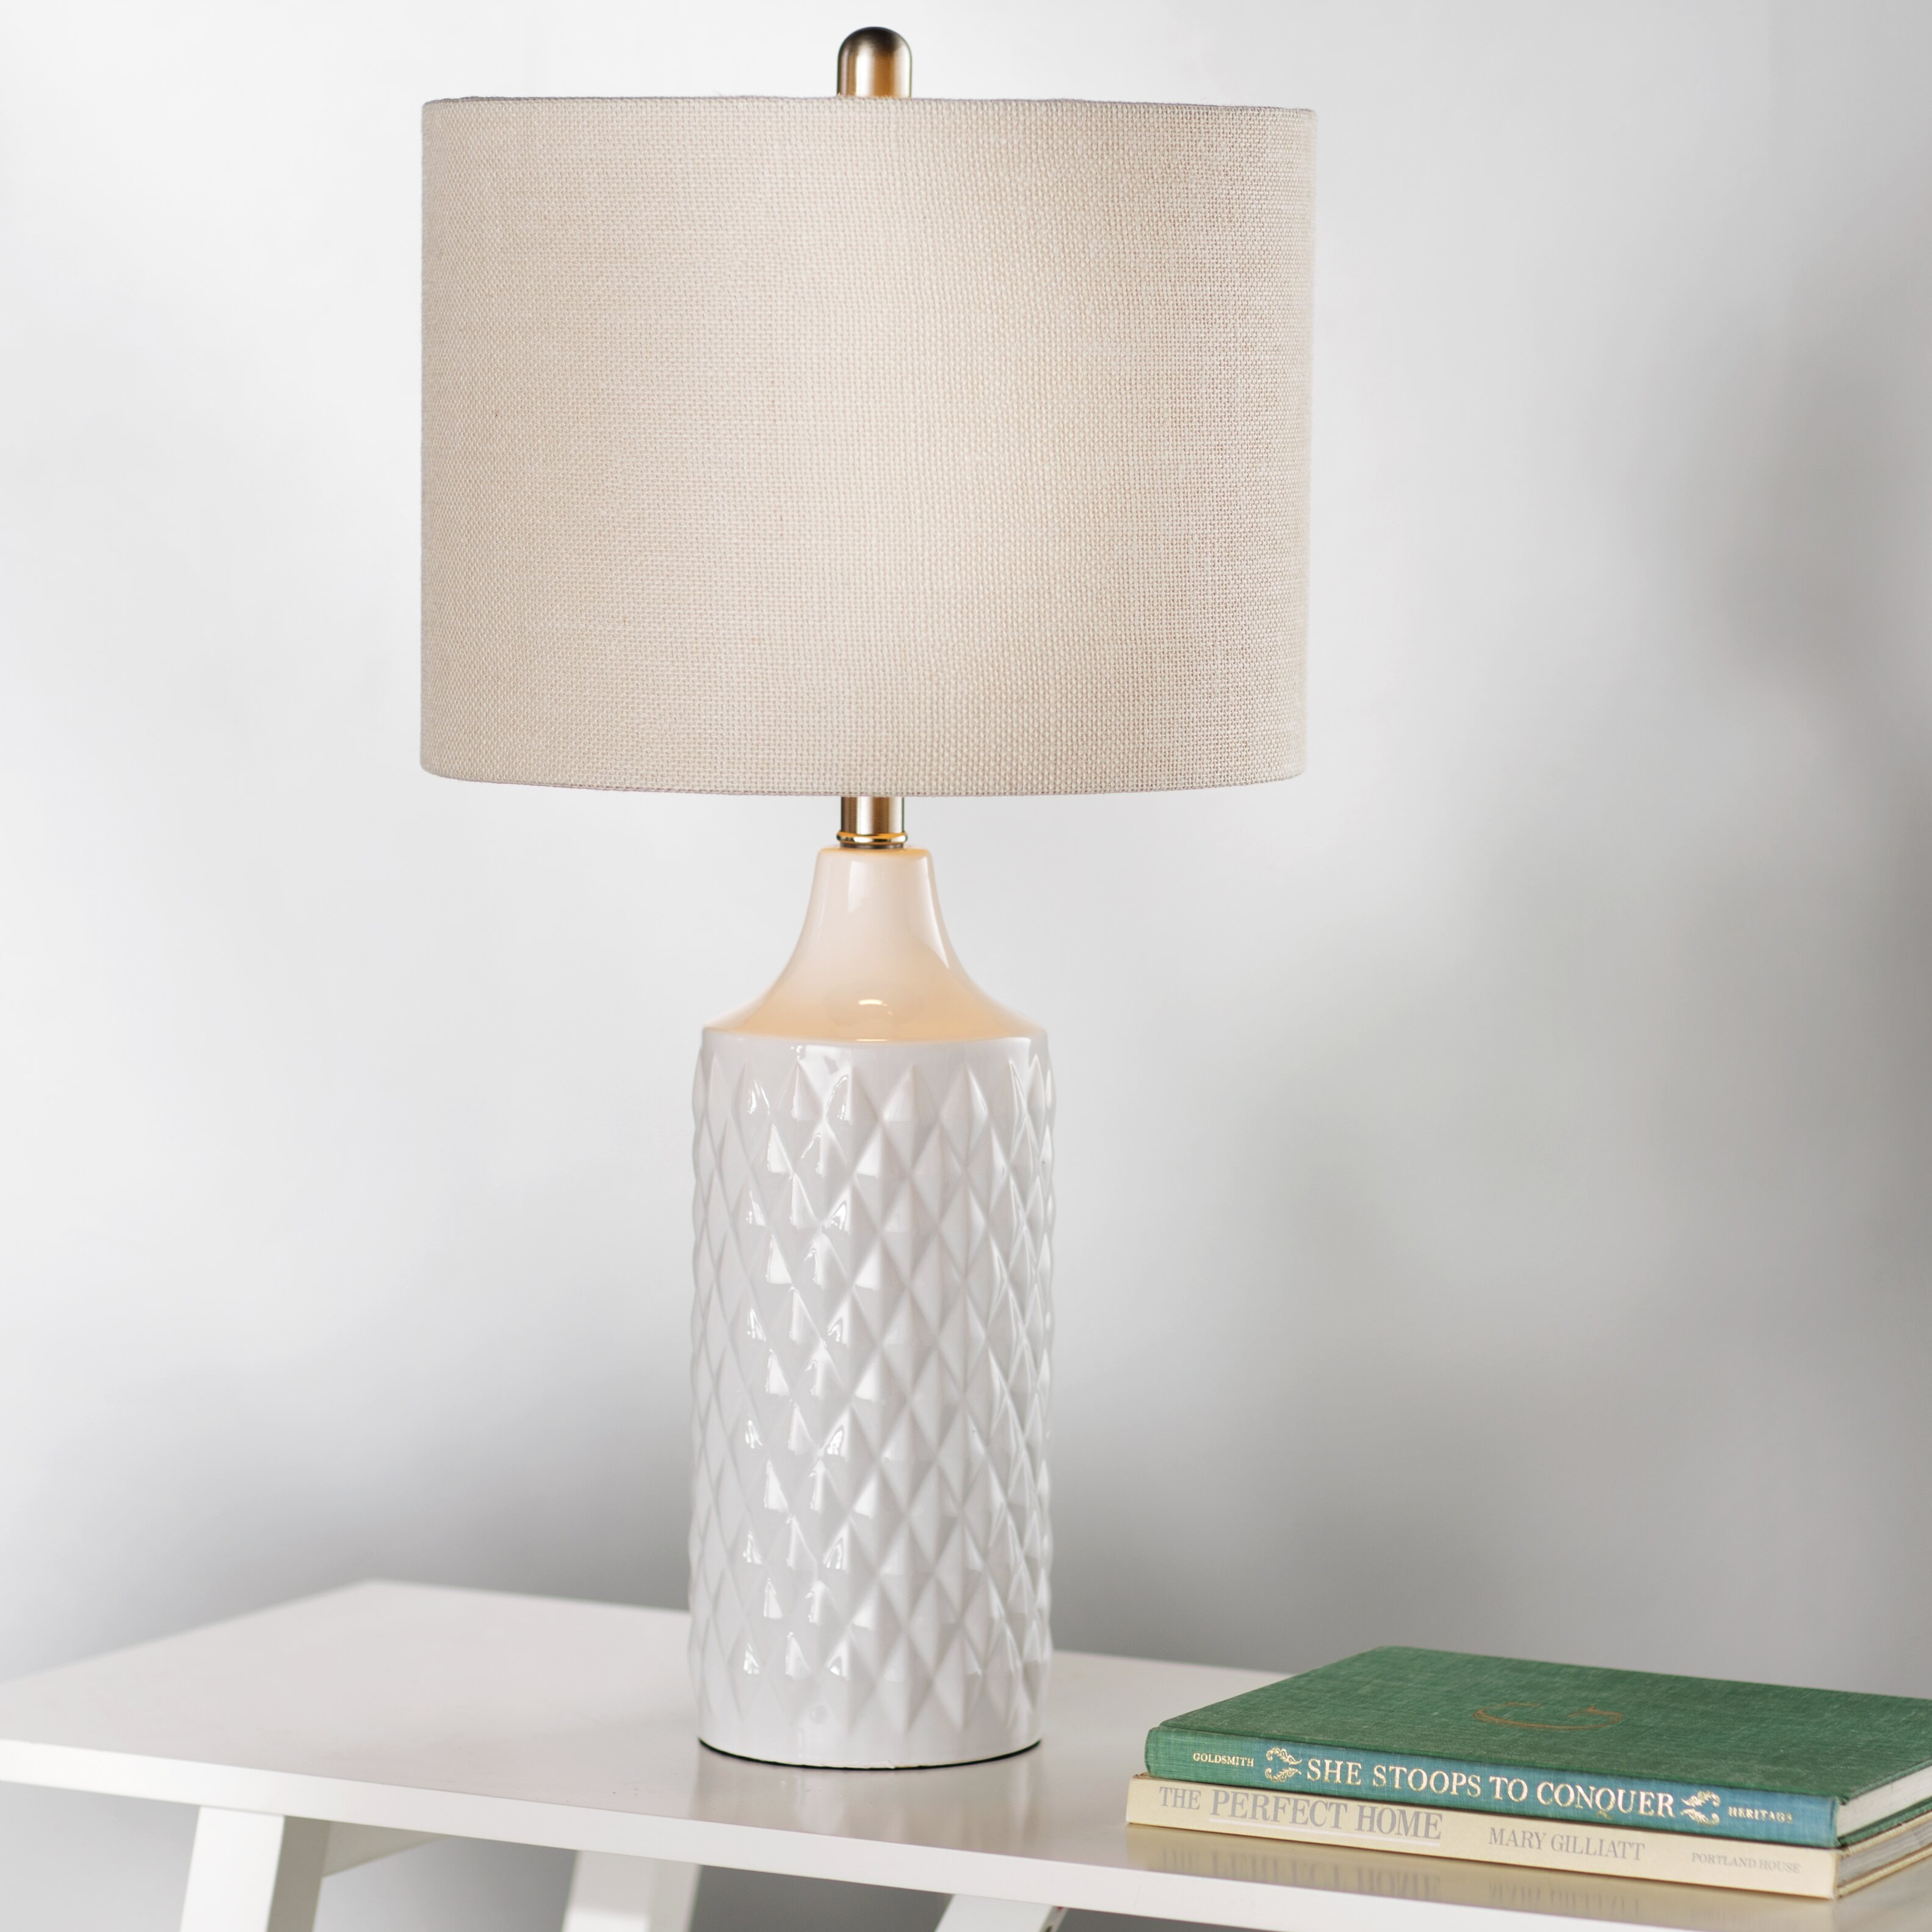 Table lamp shops melbourne best inspiration for table lamp lighting modern table lamps melbourne by ing homewares geotapseo Image collections